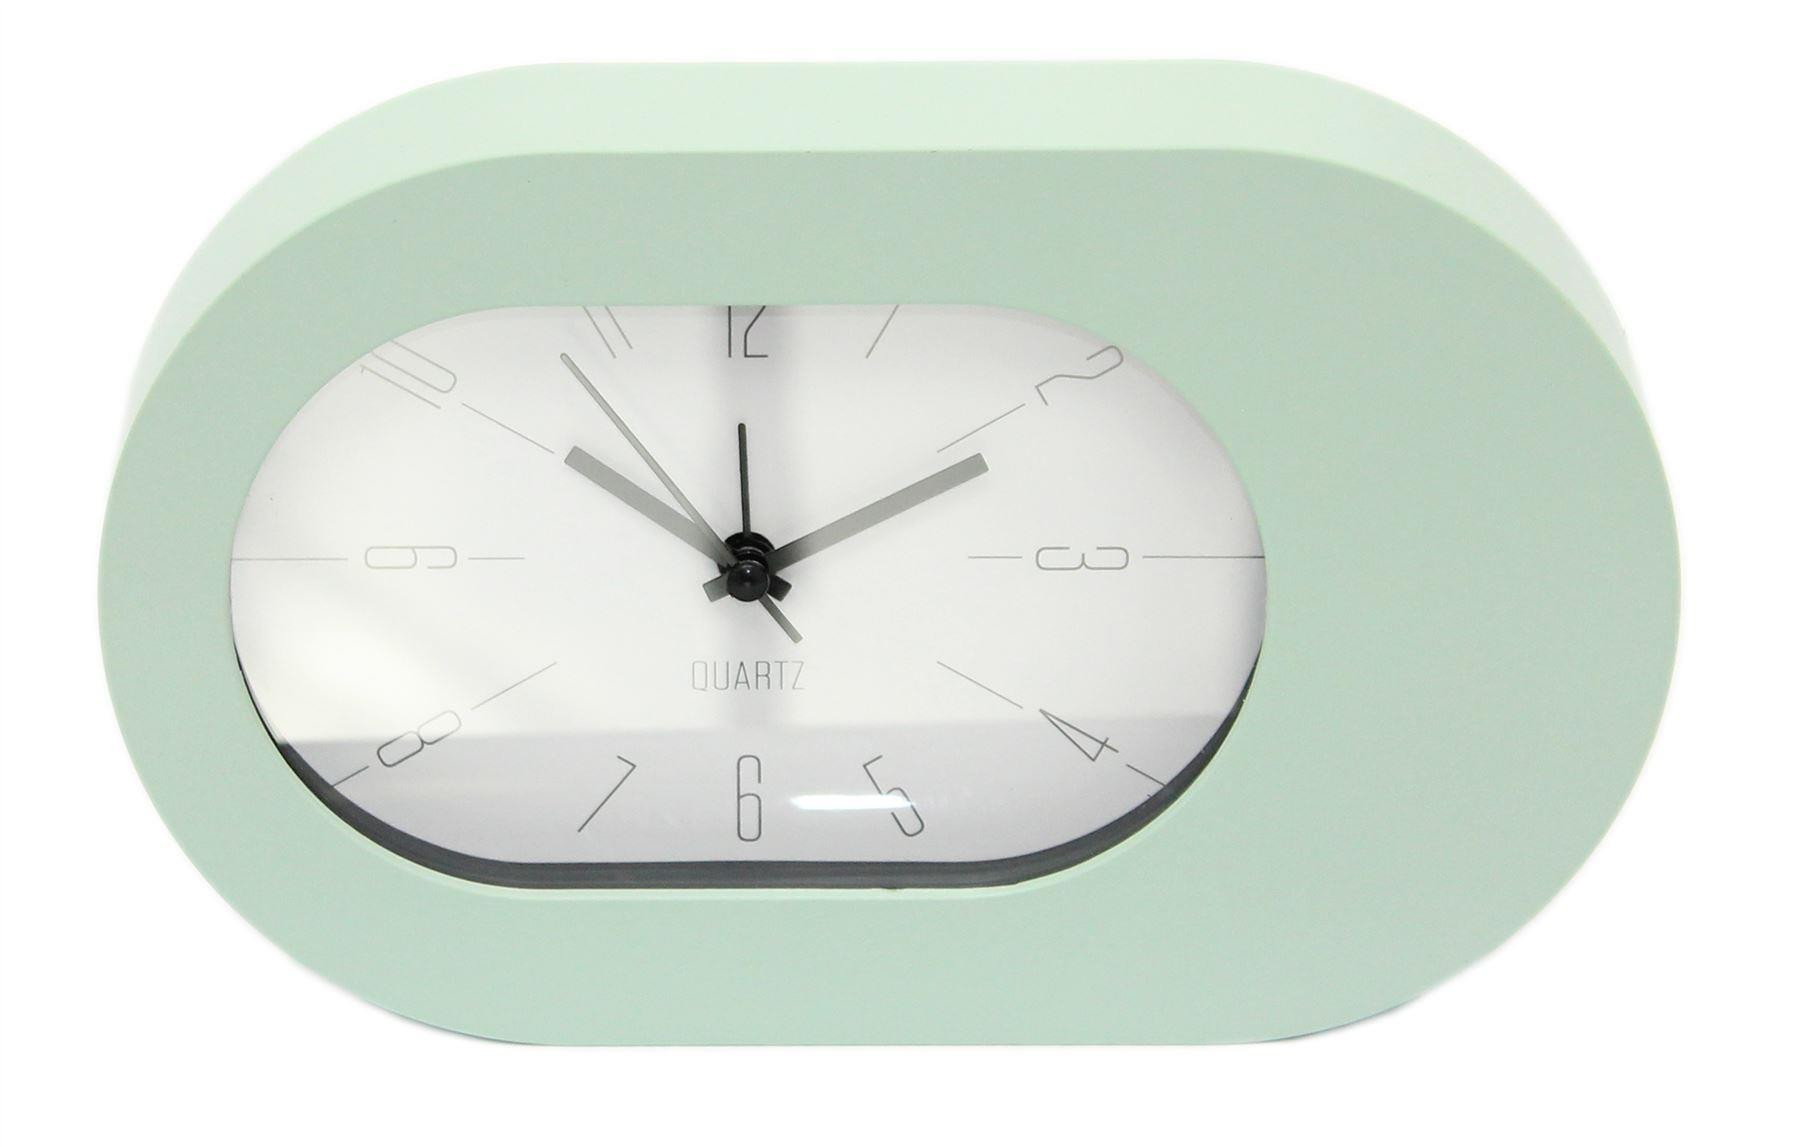 Oval Analogue Bedside Alarm Clock Modern Desk Clock Green